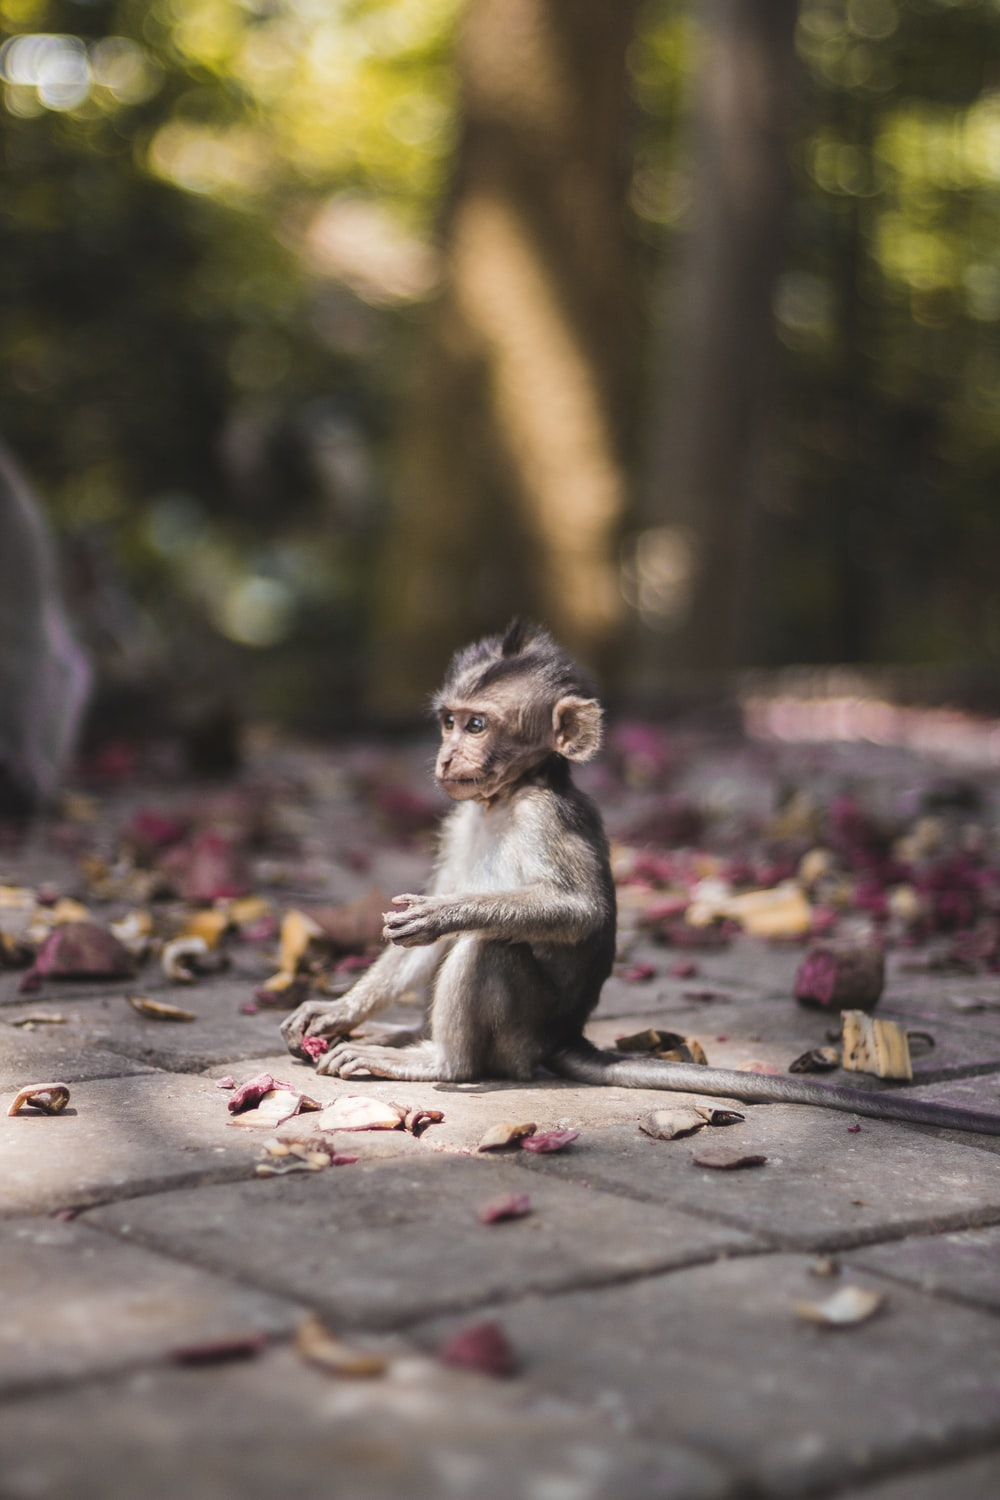 Best 20 Animals Pictures Hd Download Free Images On Unsplash Images, Photos, Reviews